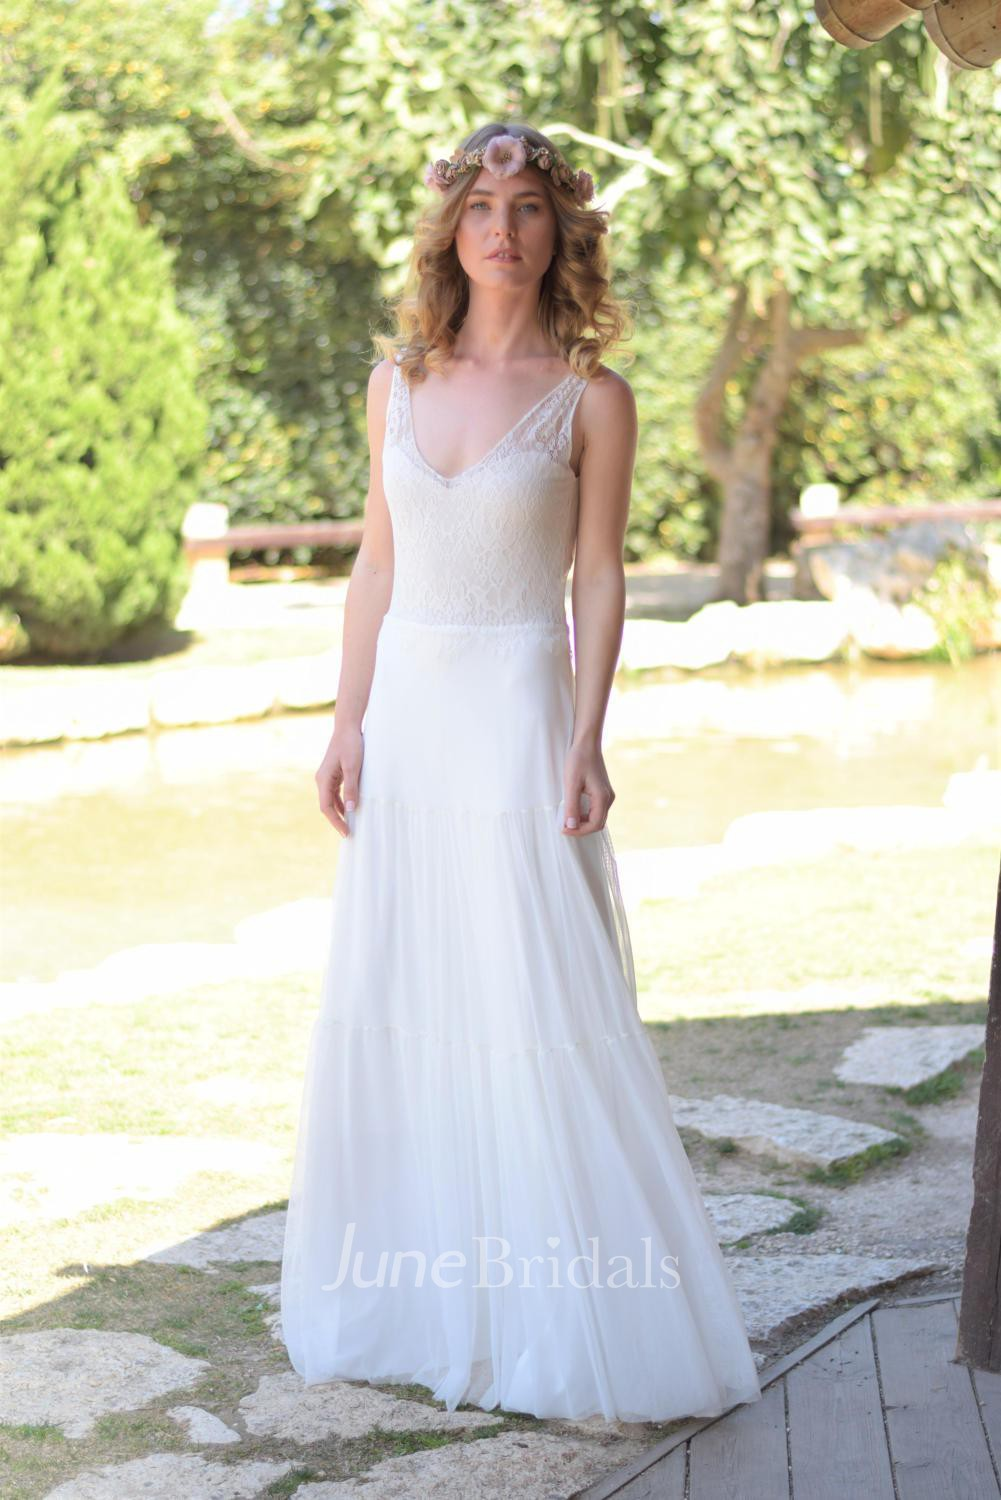 Plunged Sleeveless Chiffon Wedding Dress With Lace And